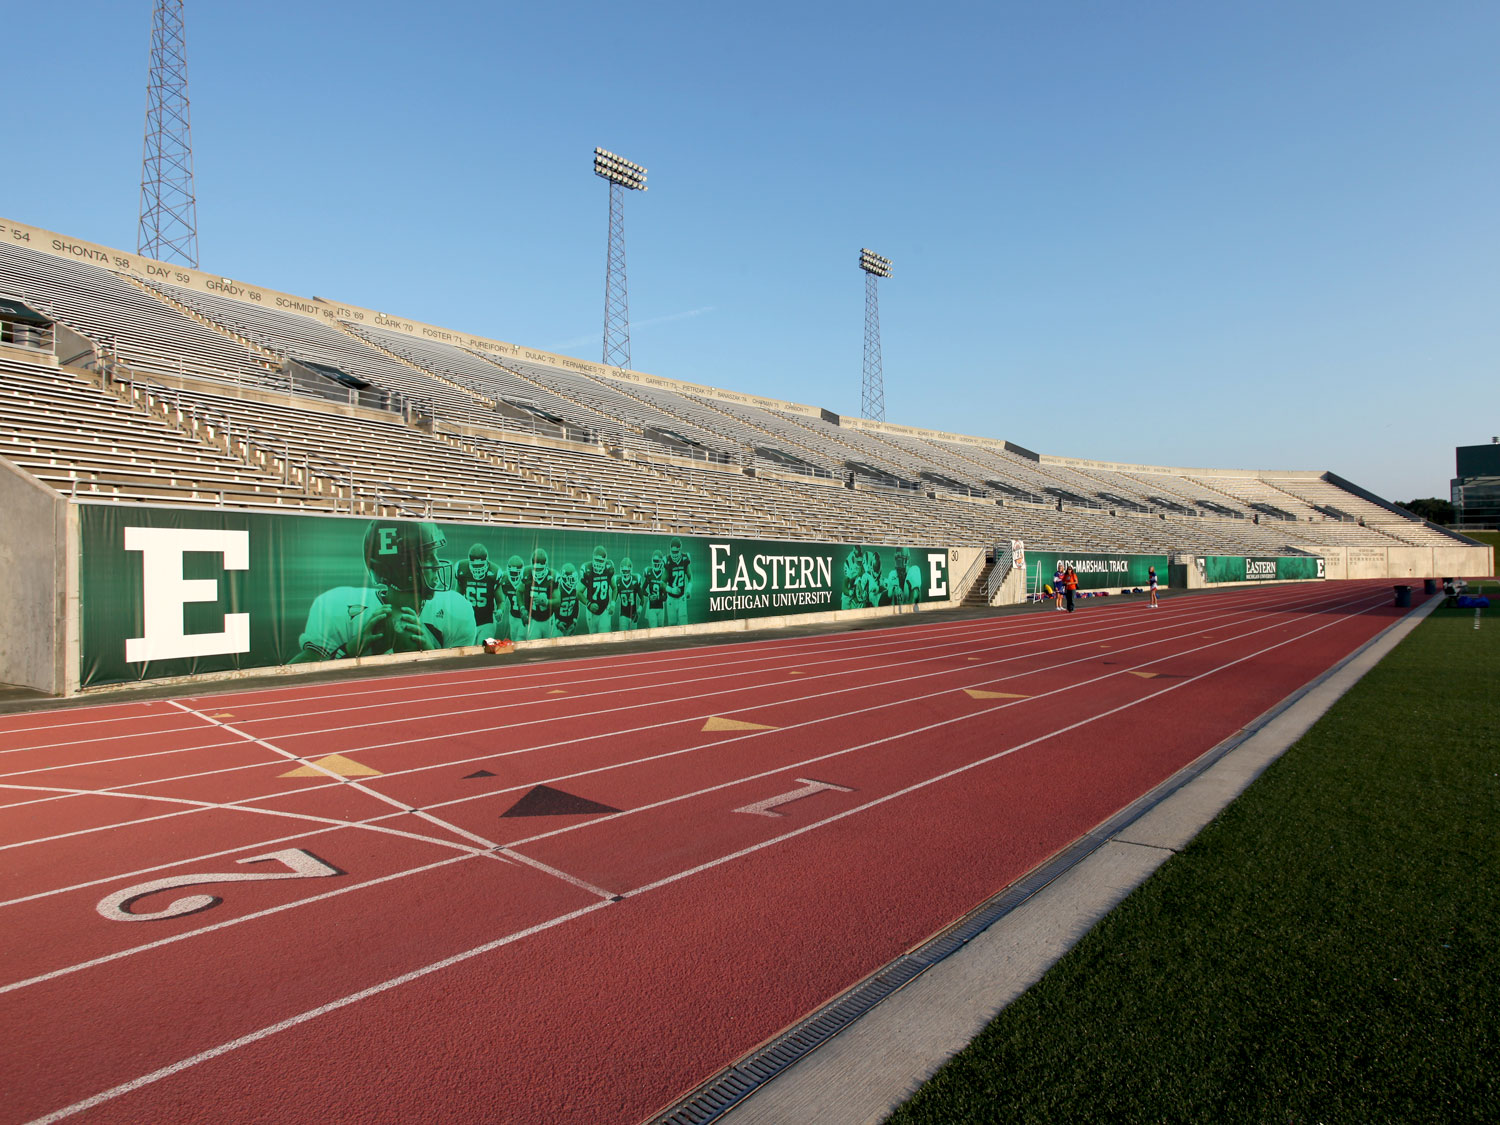 Eastern Michigan University Football Stadium Graphics